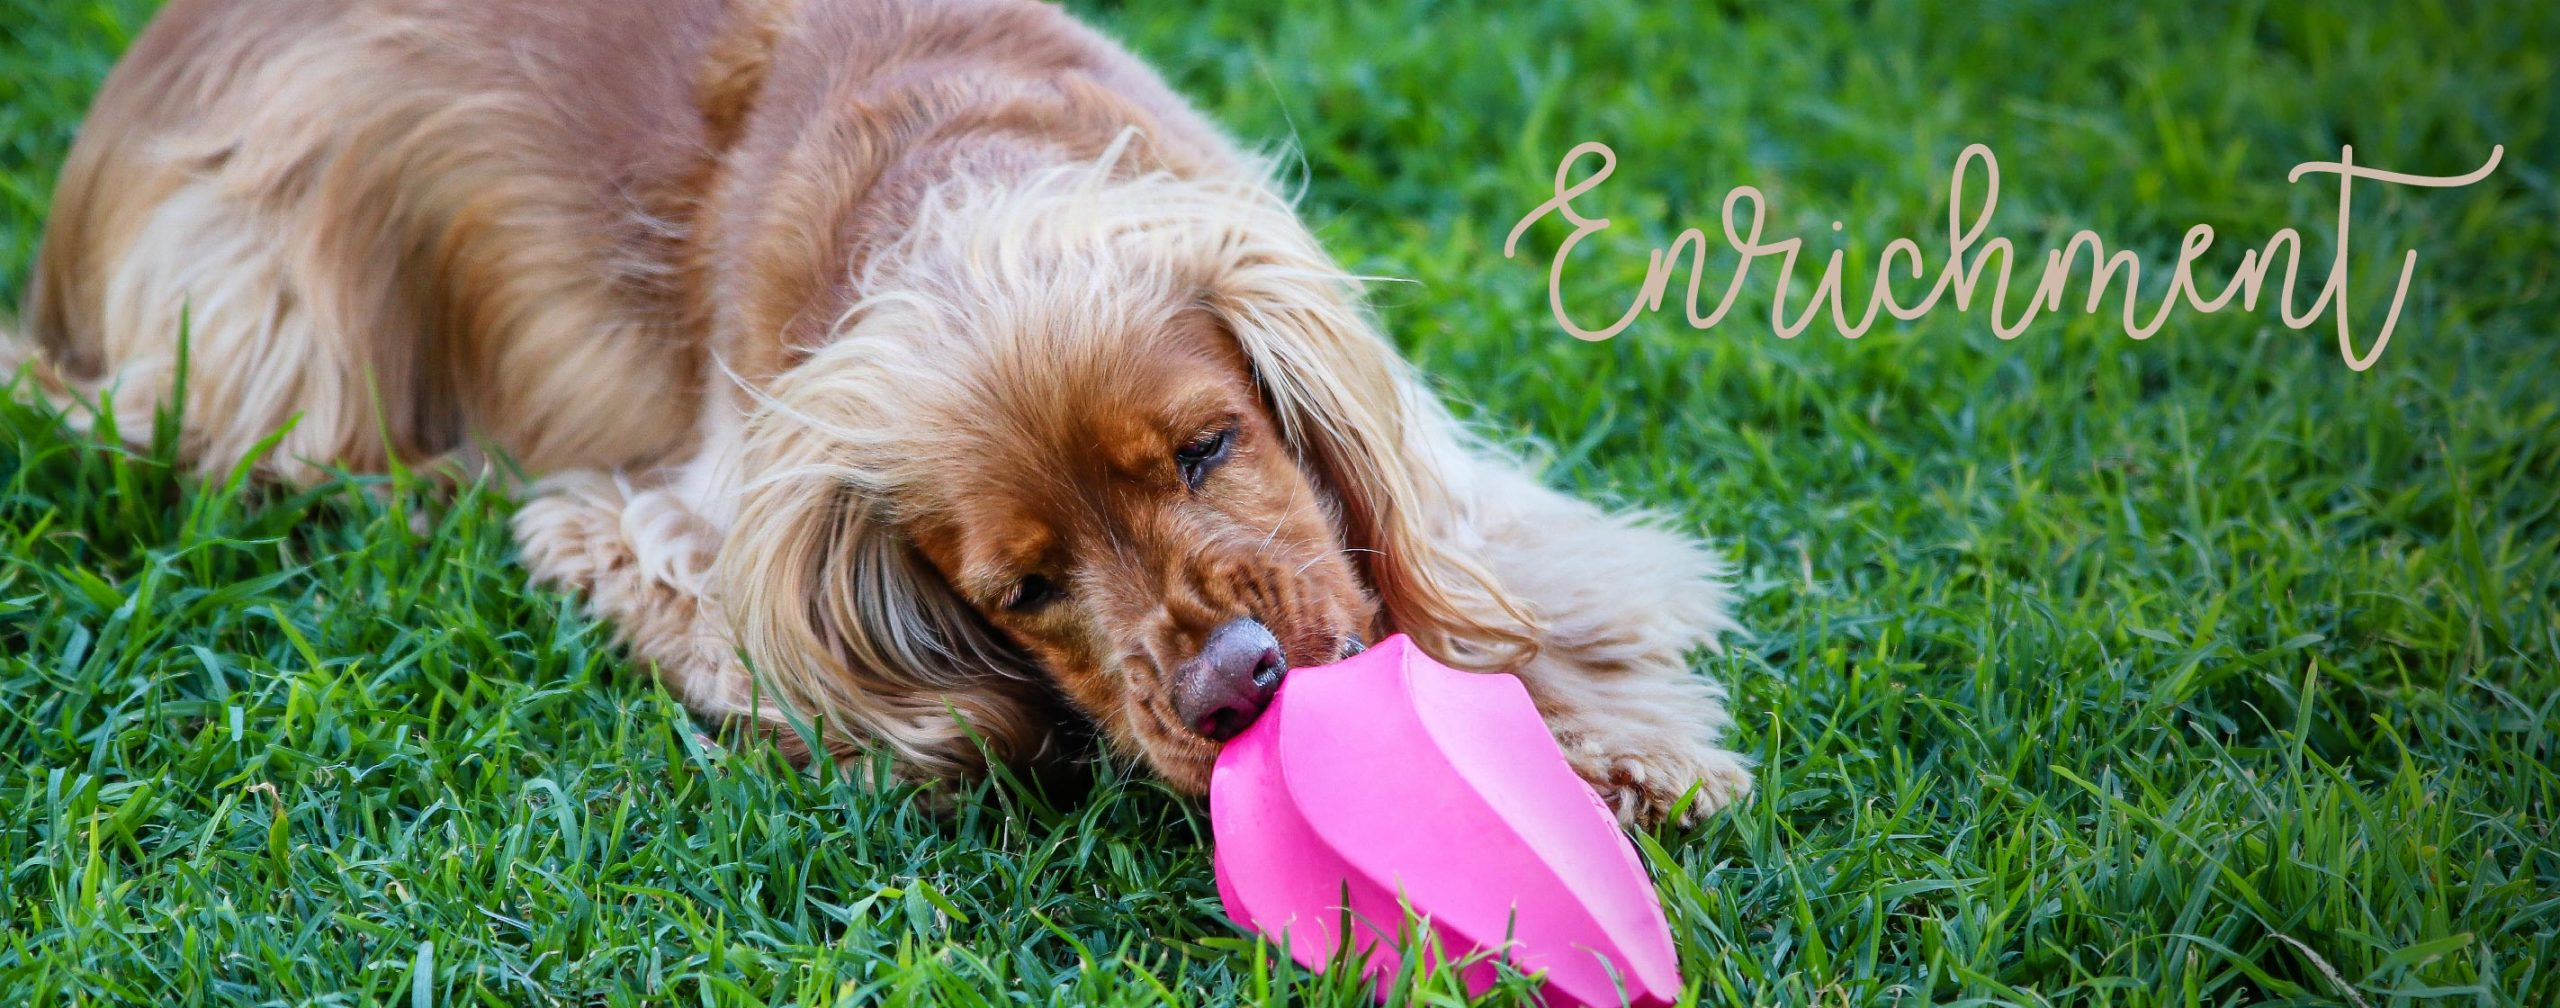 MAX_AND_WILLOW_ENRICHMENT-01